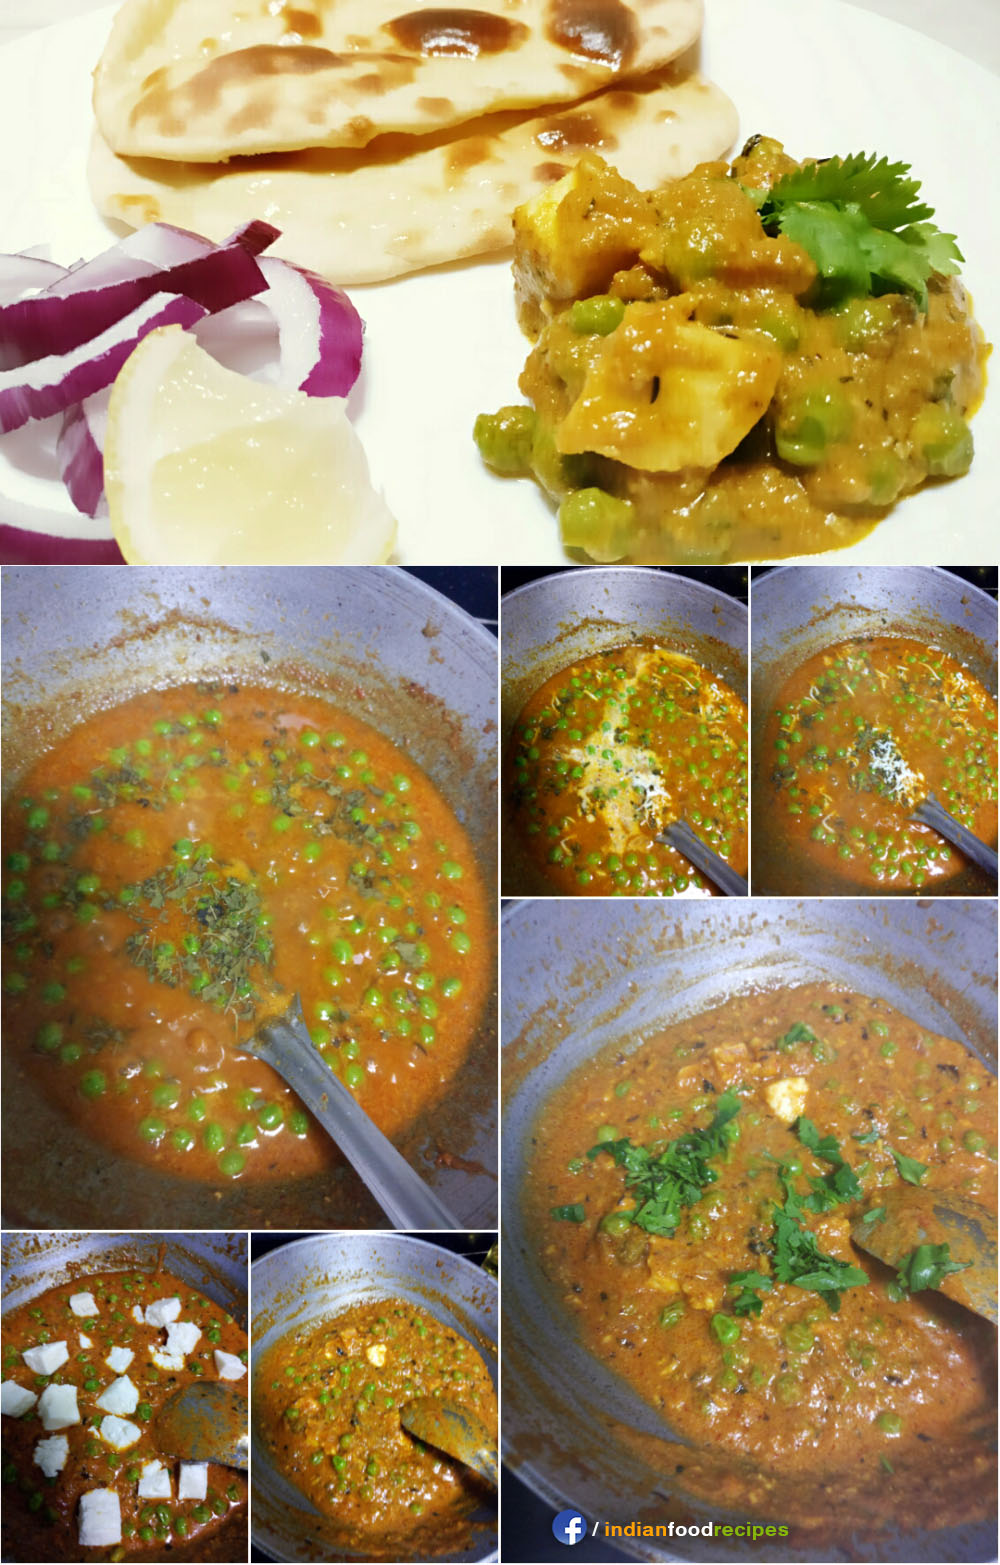 Matar paneer recipe step by step